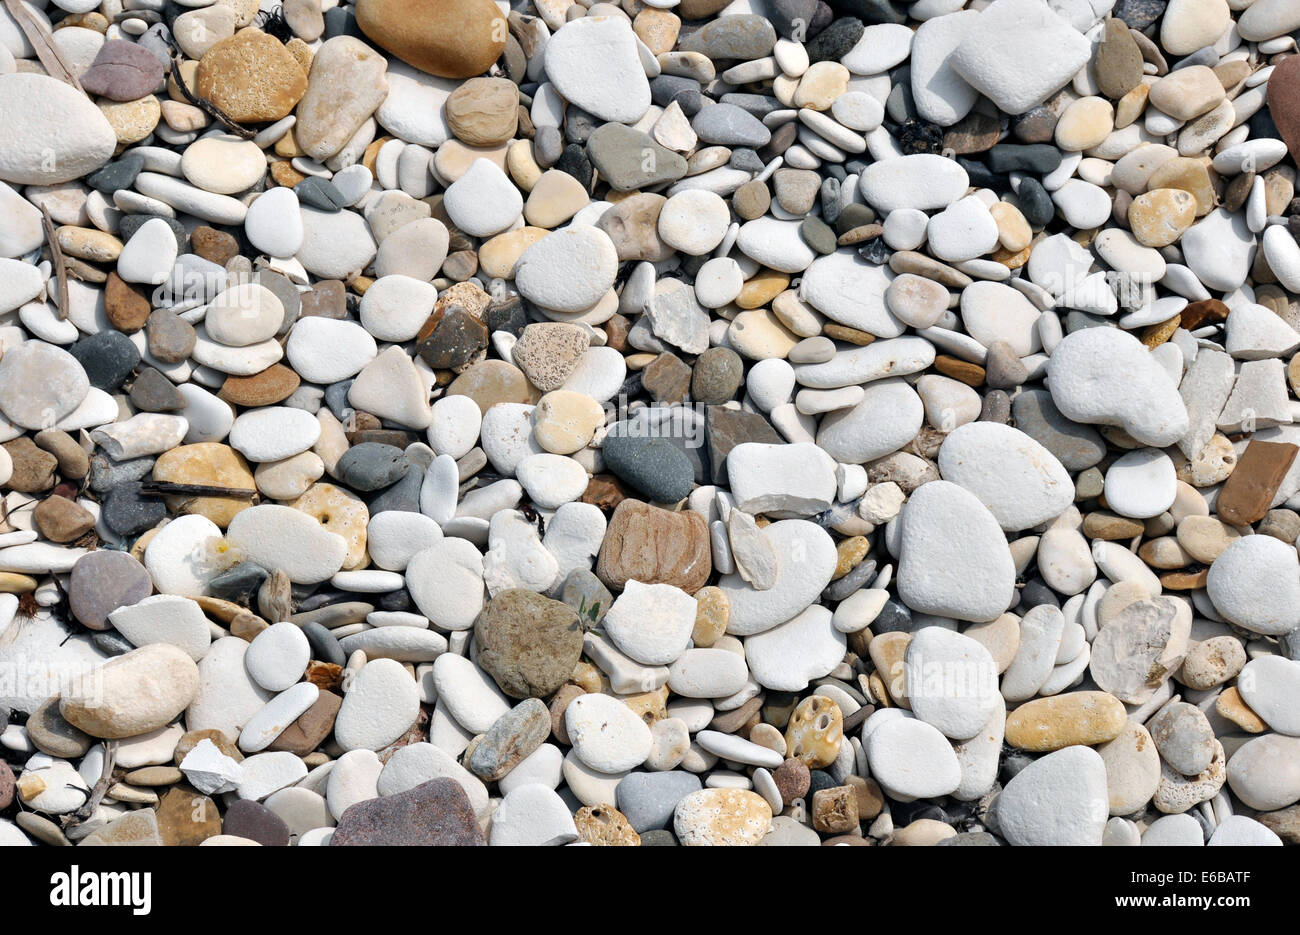 Closeup of smooth pebbles on beach. Makes an ideal background image for nautical themes. - Stock Image